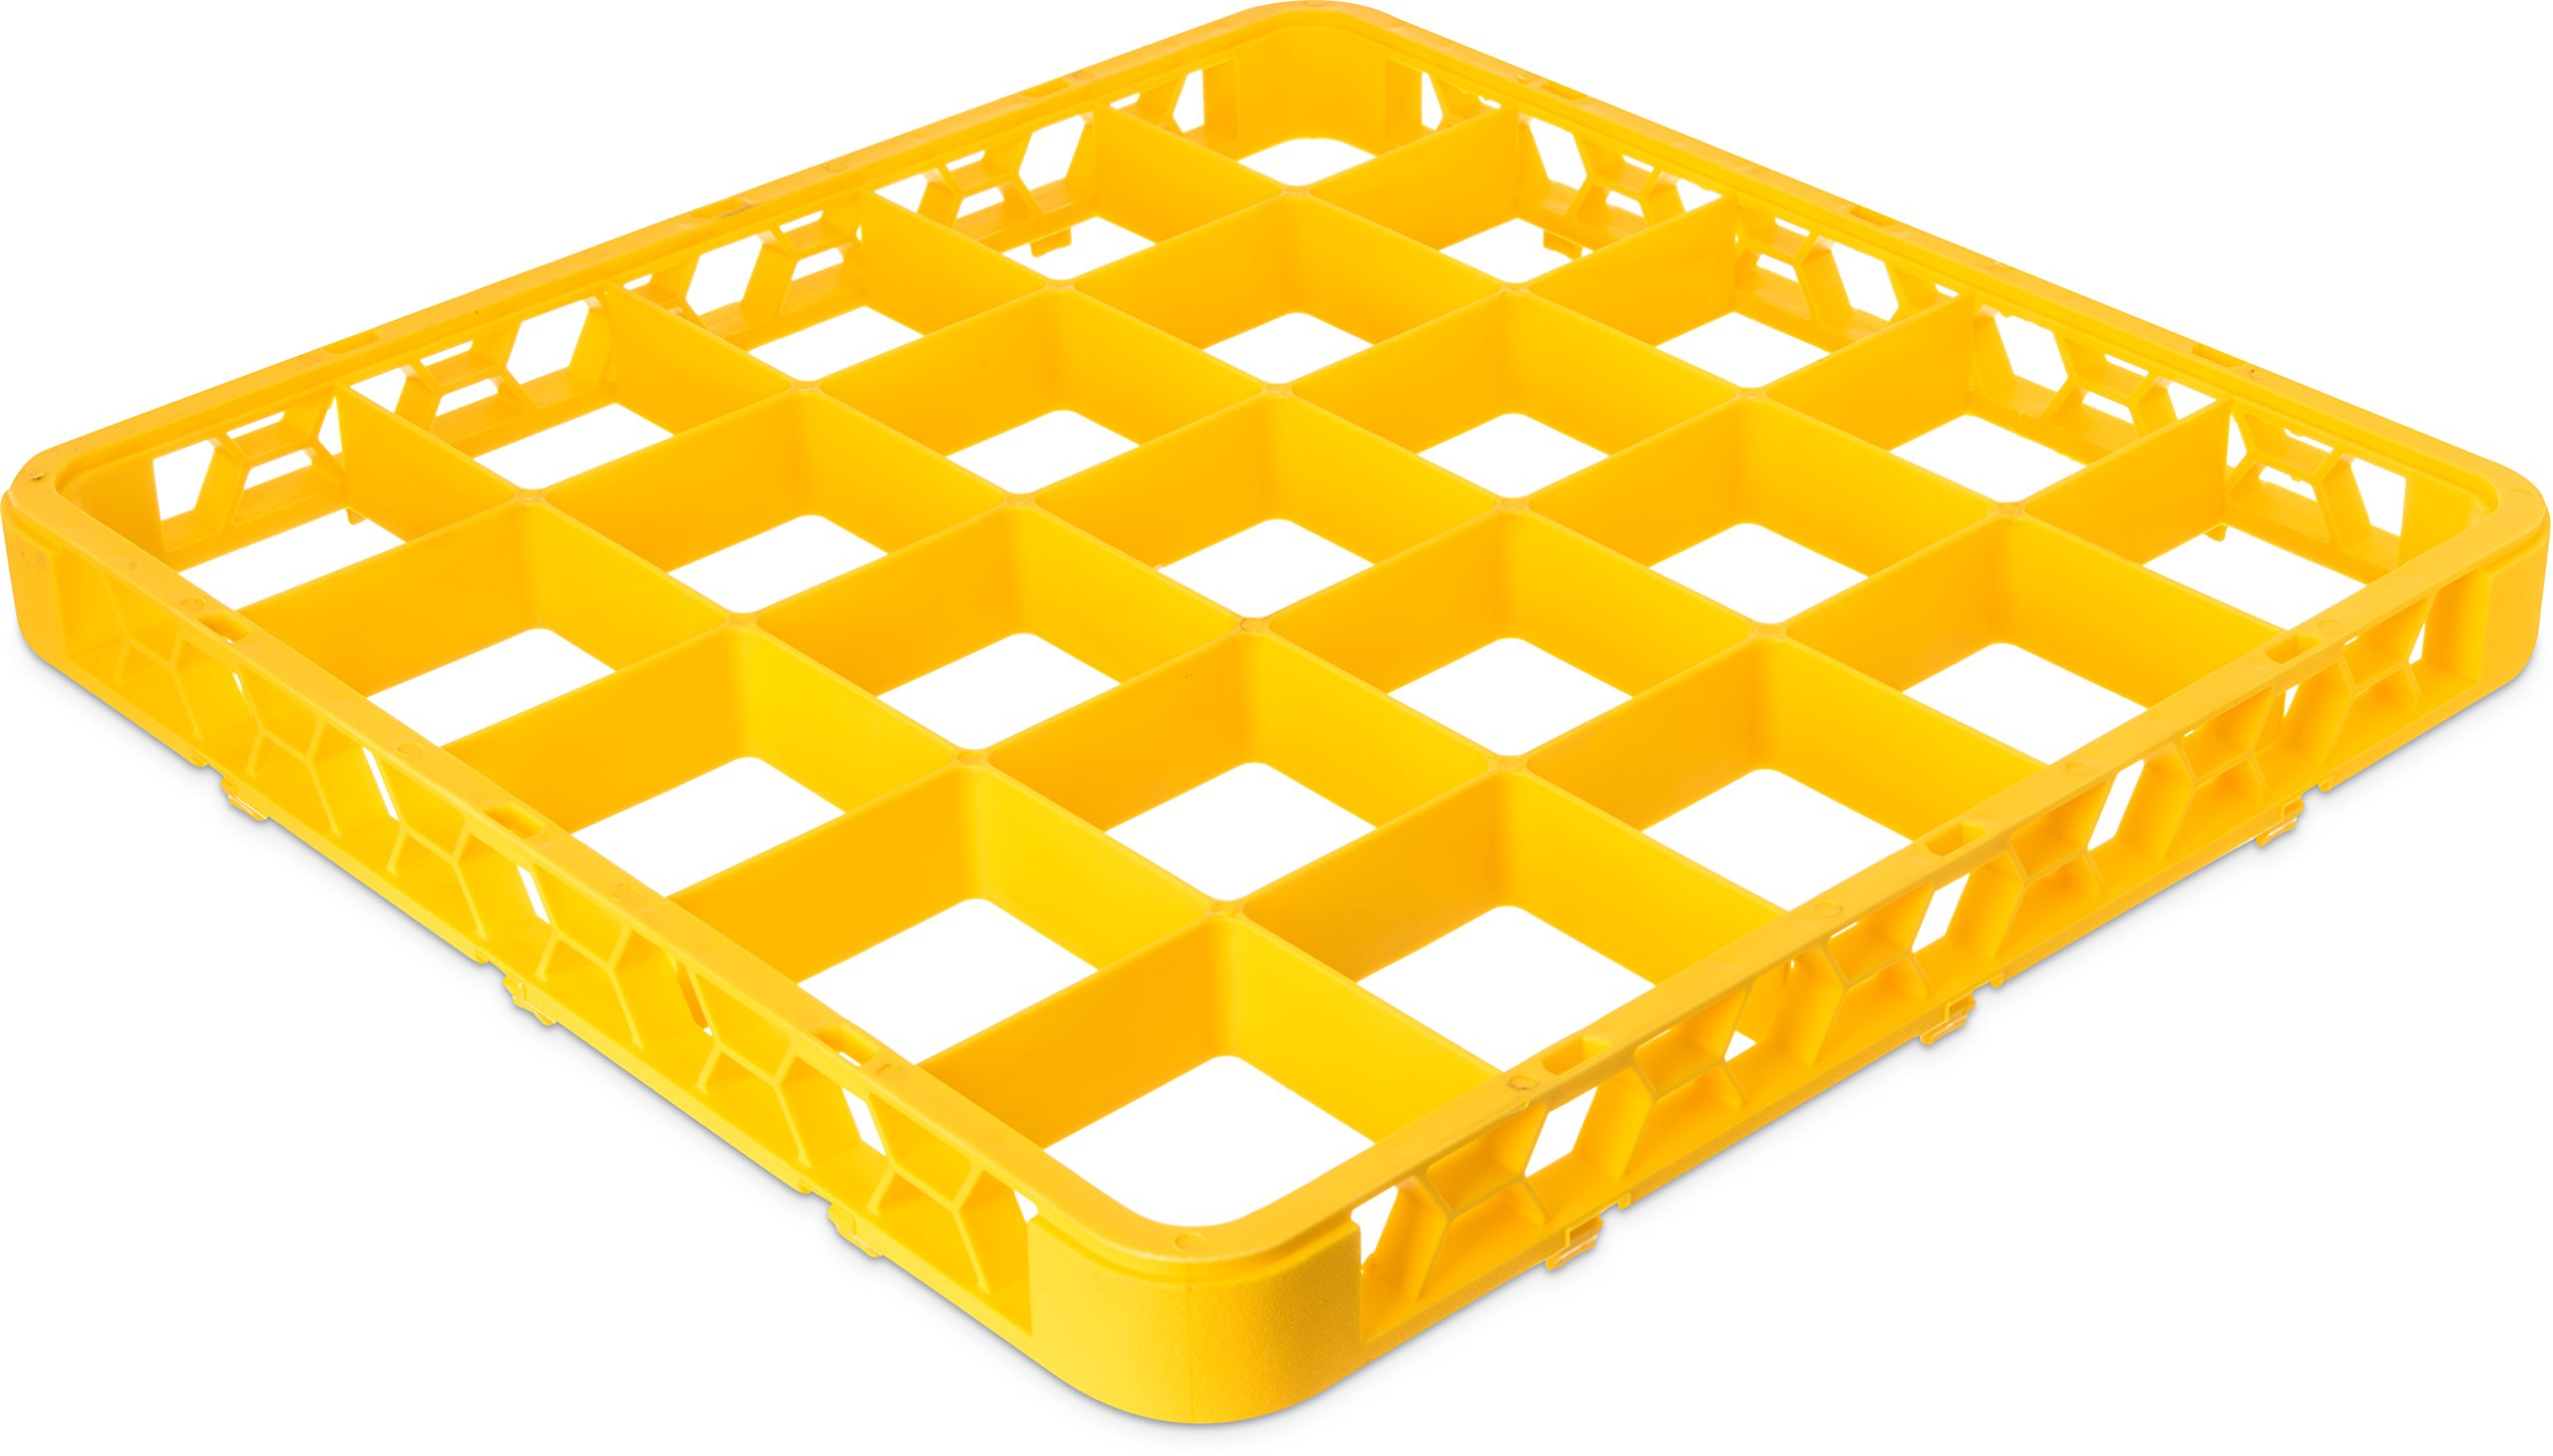 Carlisle RE25C04 OptiClean 25 Compartment Cup Rack Extender, 3-1/2'' Compartments, Yellow (Pack of 6)